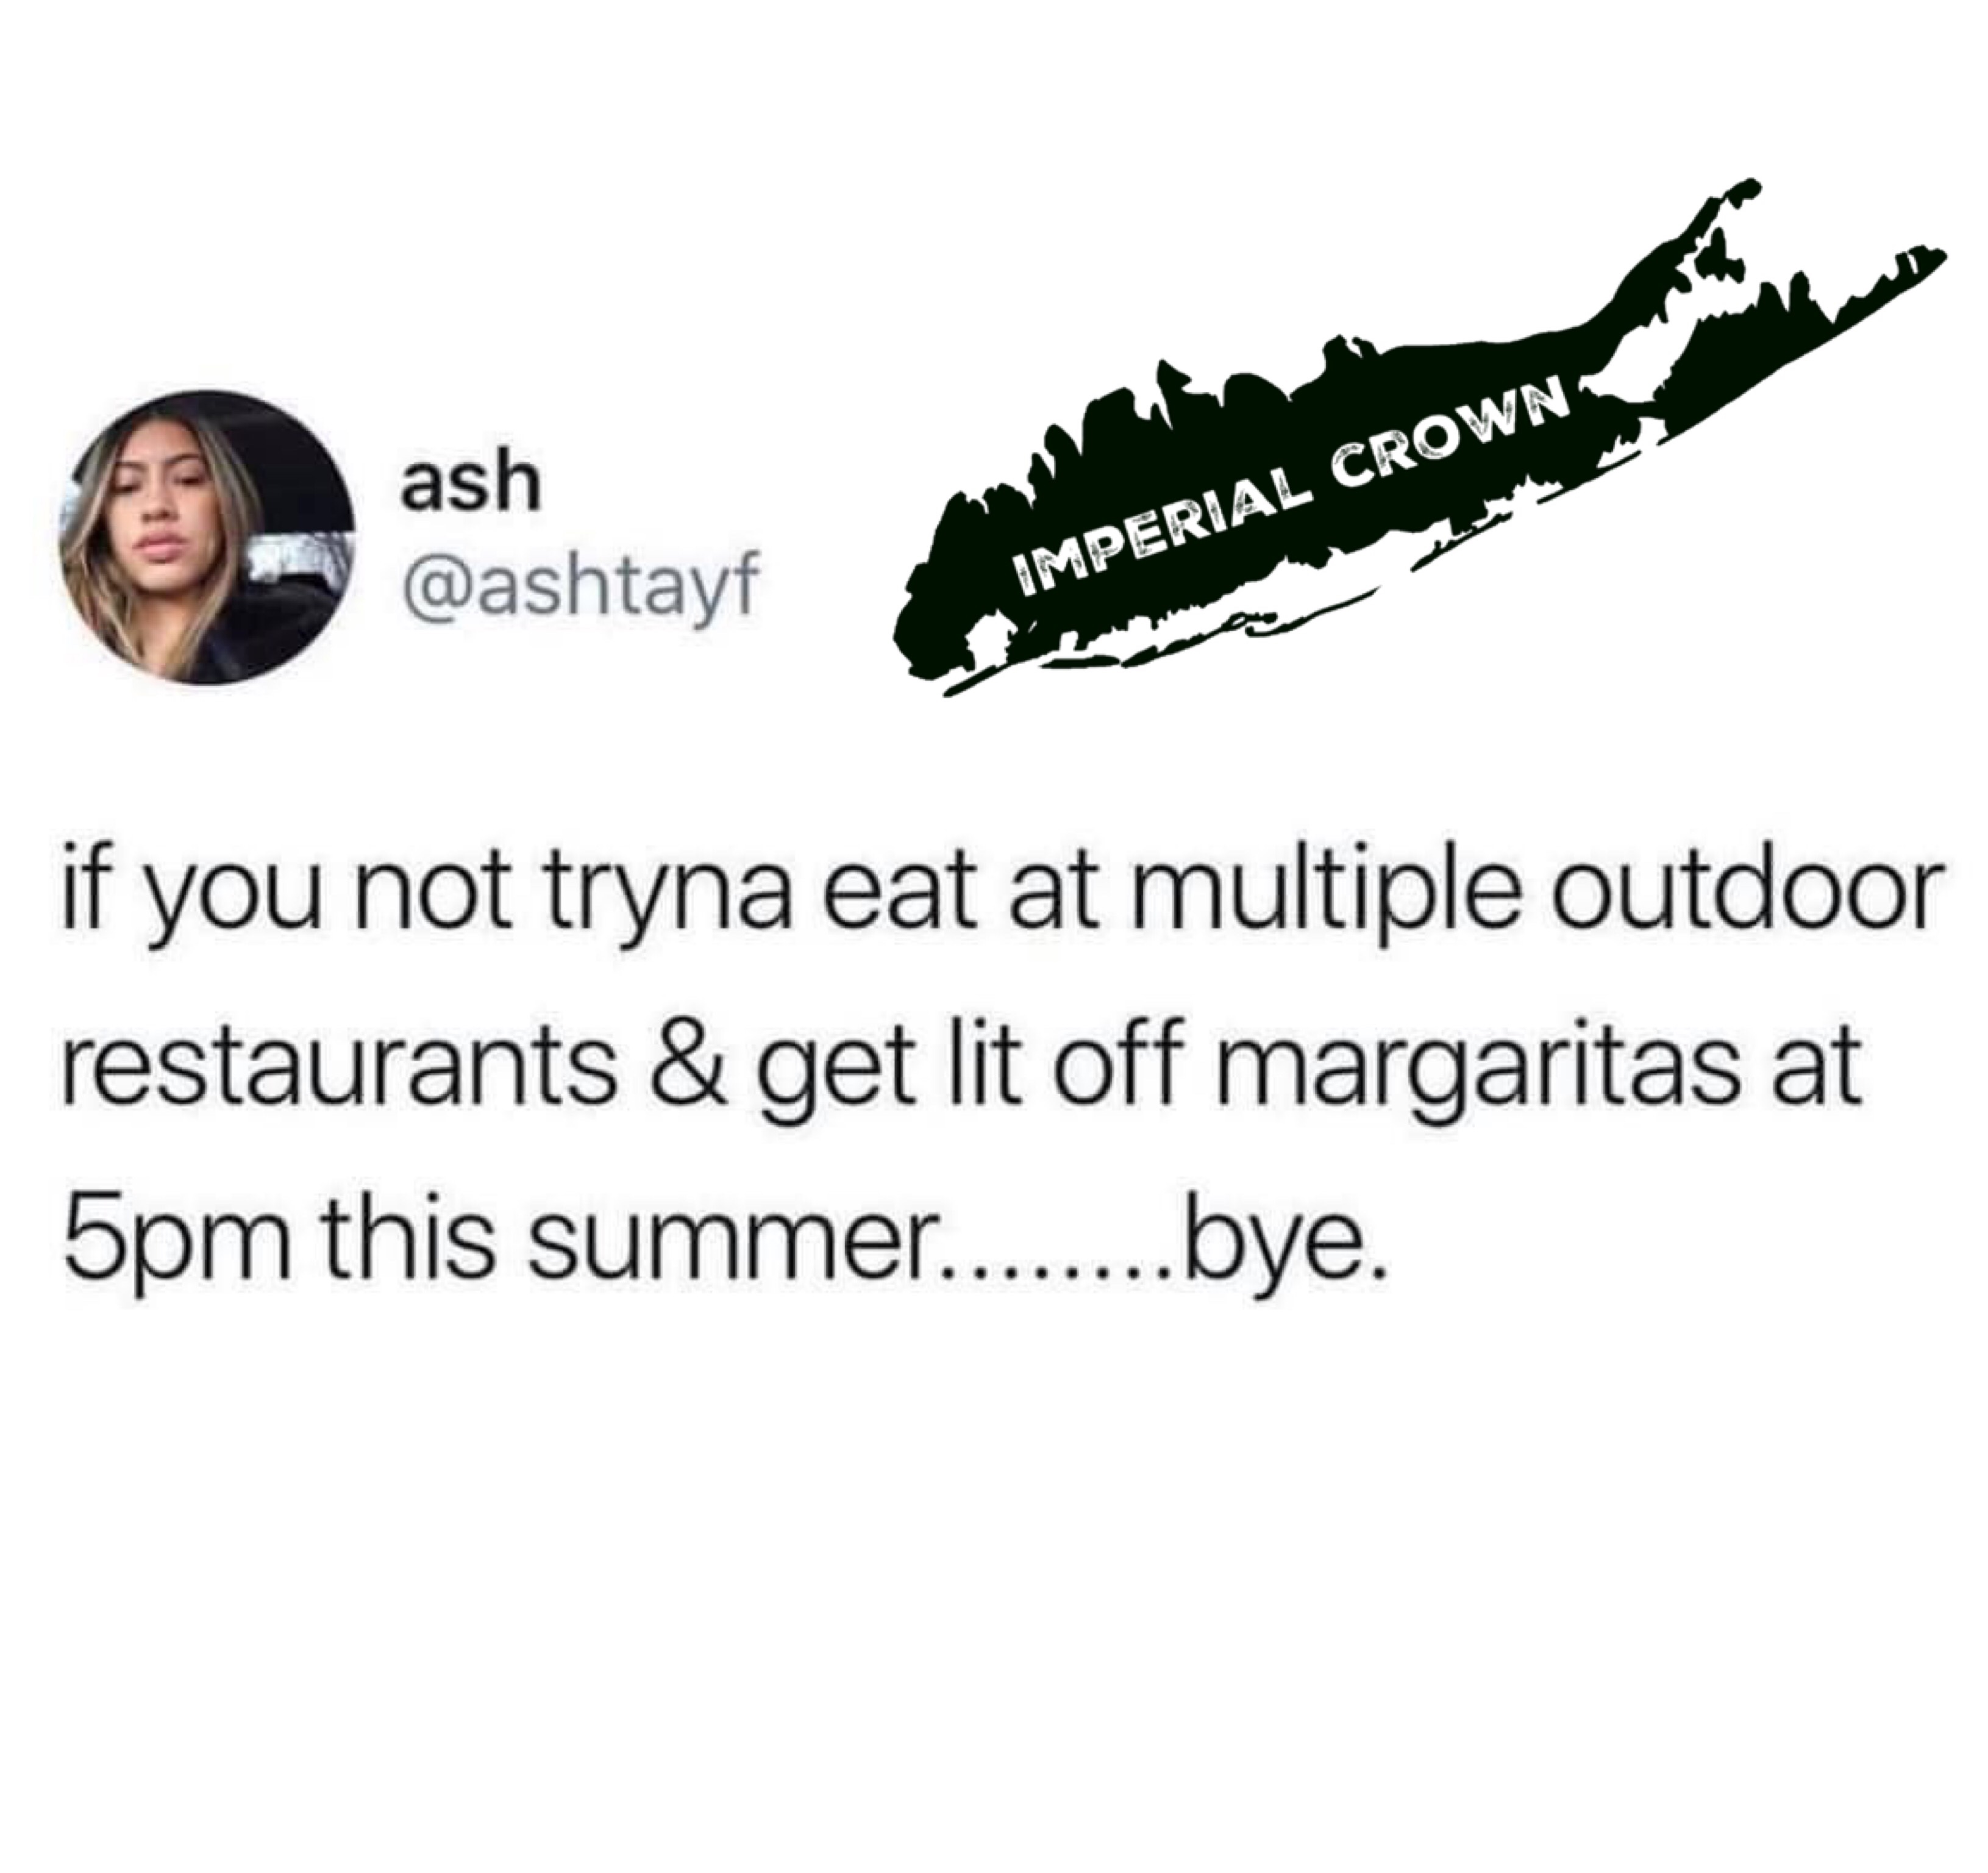 If you not tryna eat at multiple outdoor restaurants & get lit off margaritas at 5pm this summer bye